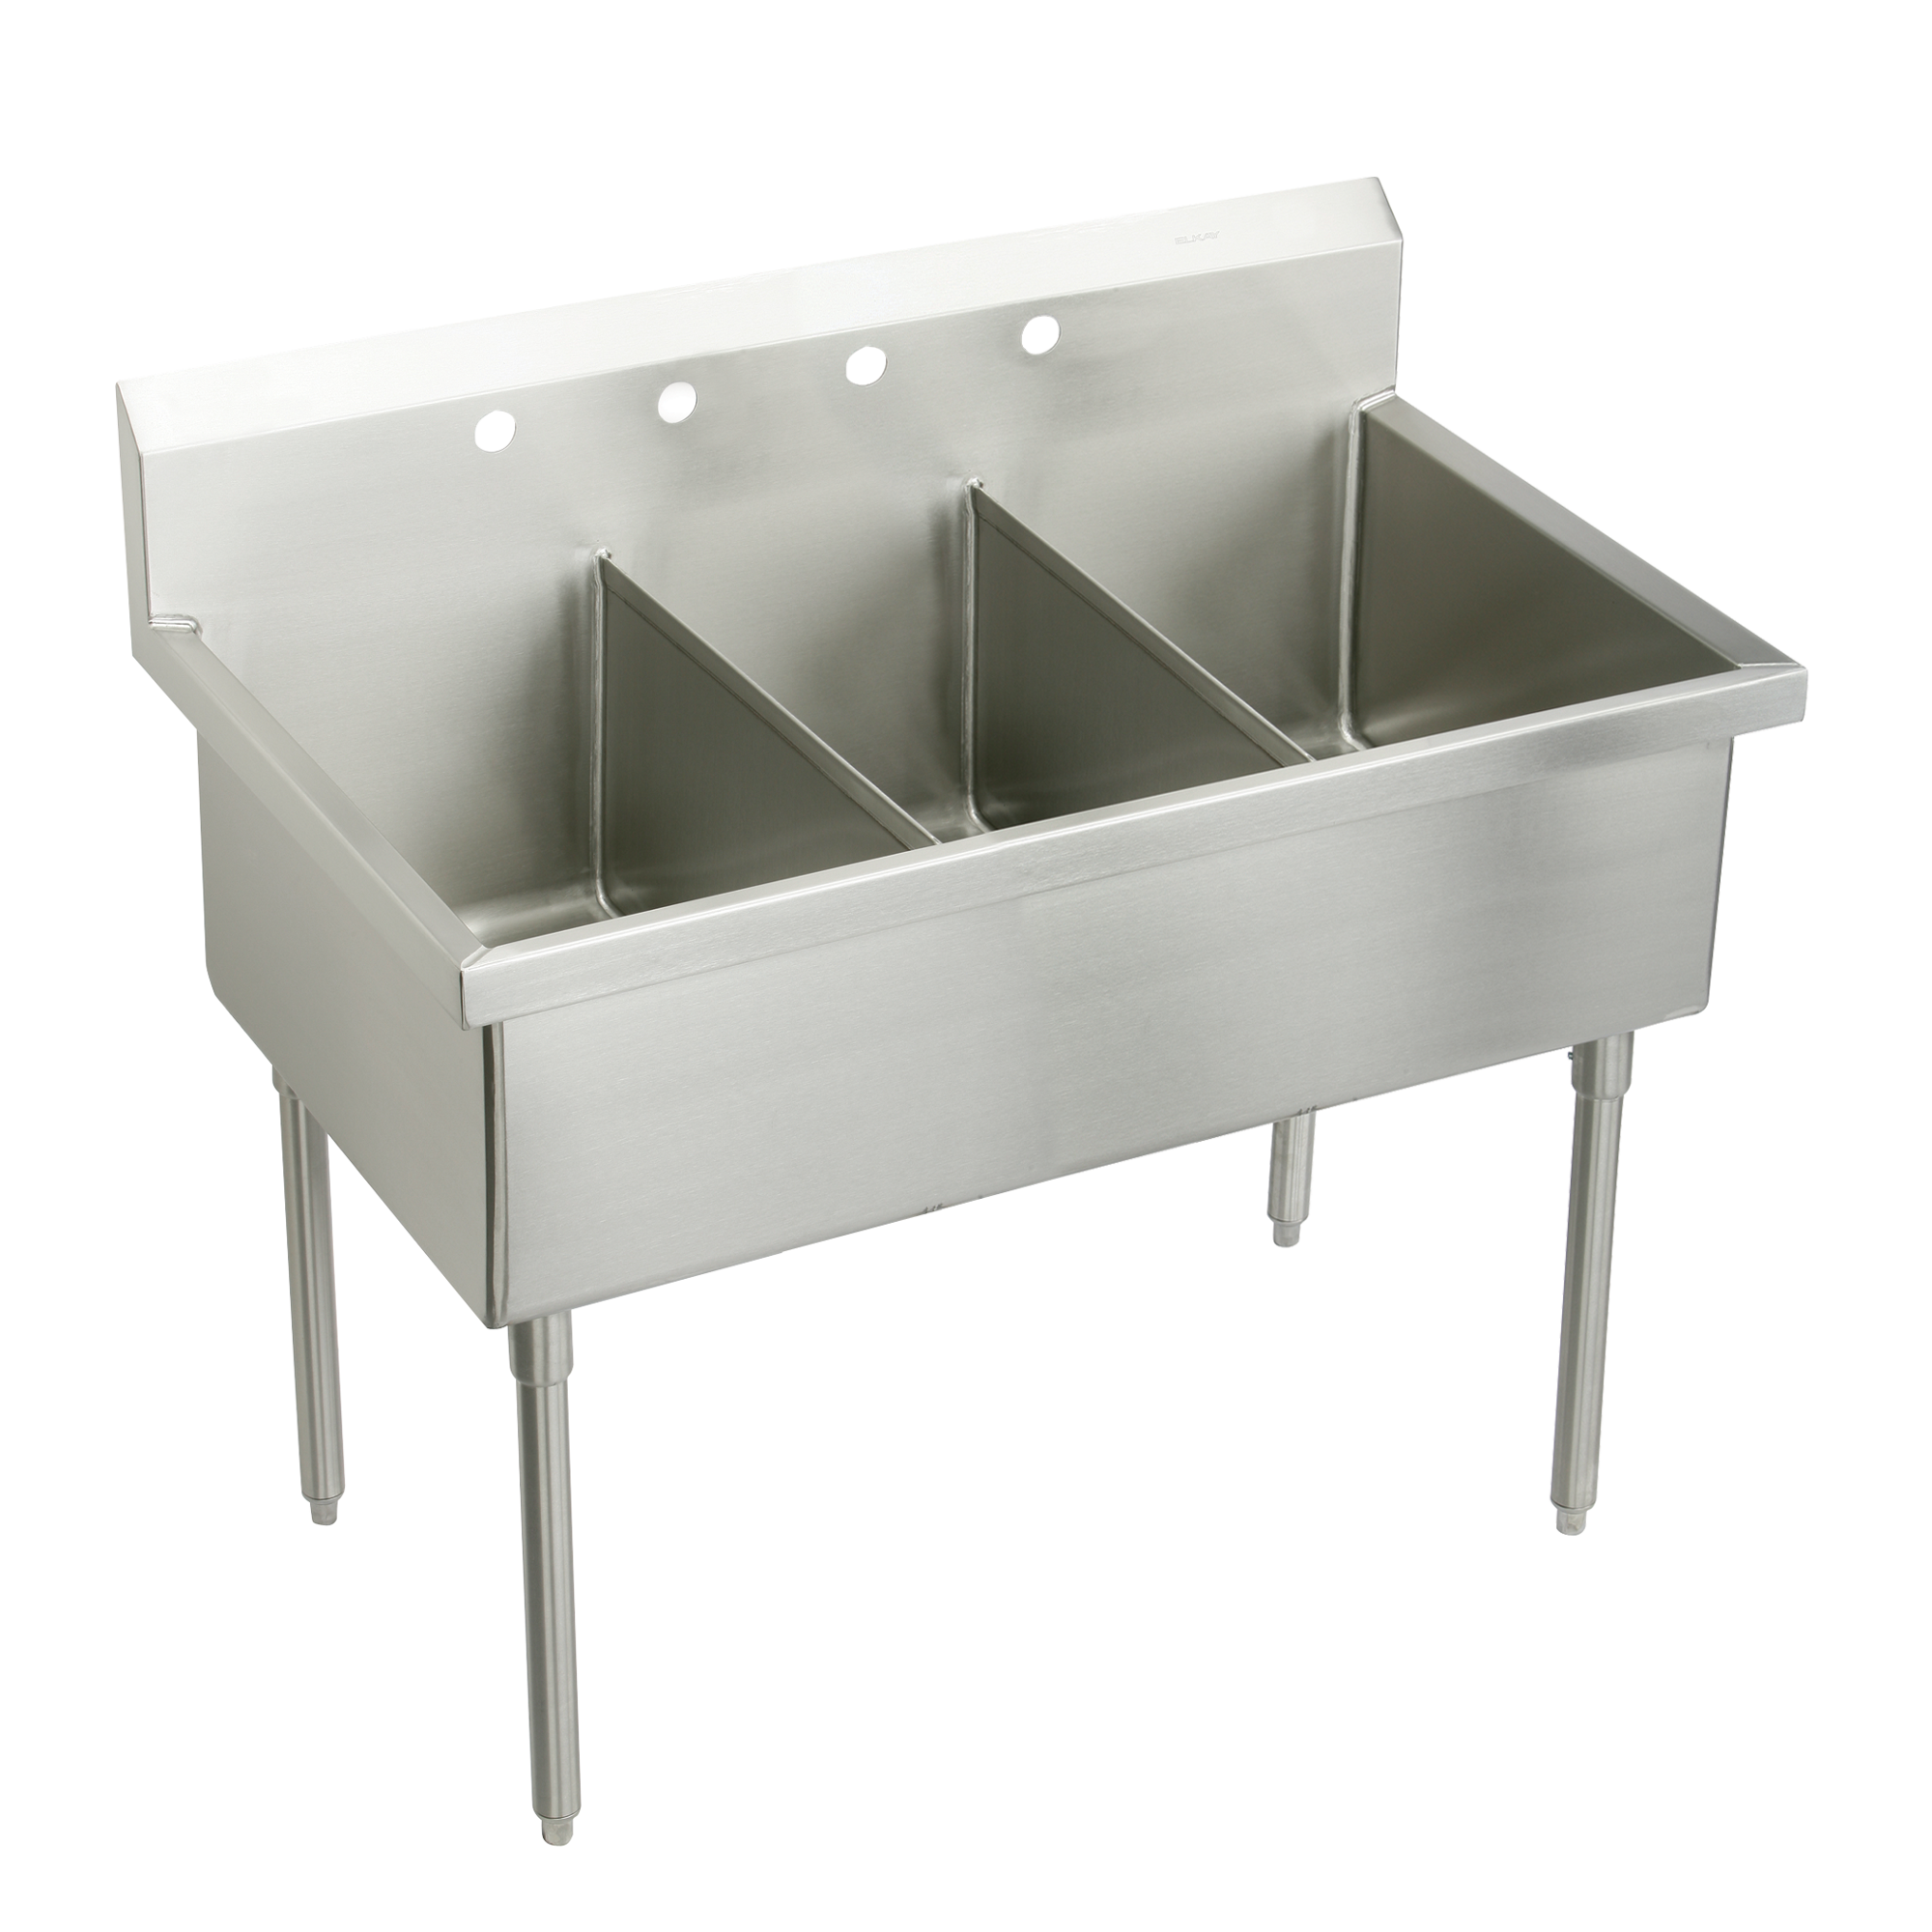 Picture of: Business Industrial Sink Drain Parts Accessories Drainboard 2 Compartment Nsf 48 Stainless Steel Commercial Kitchen Prep Sink Studio In Fine Fr